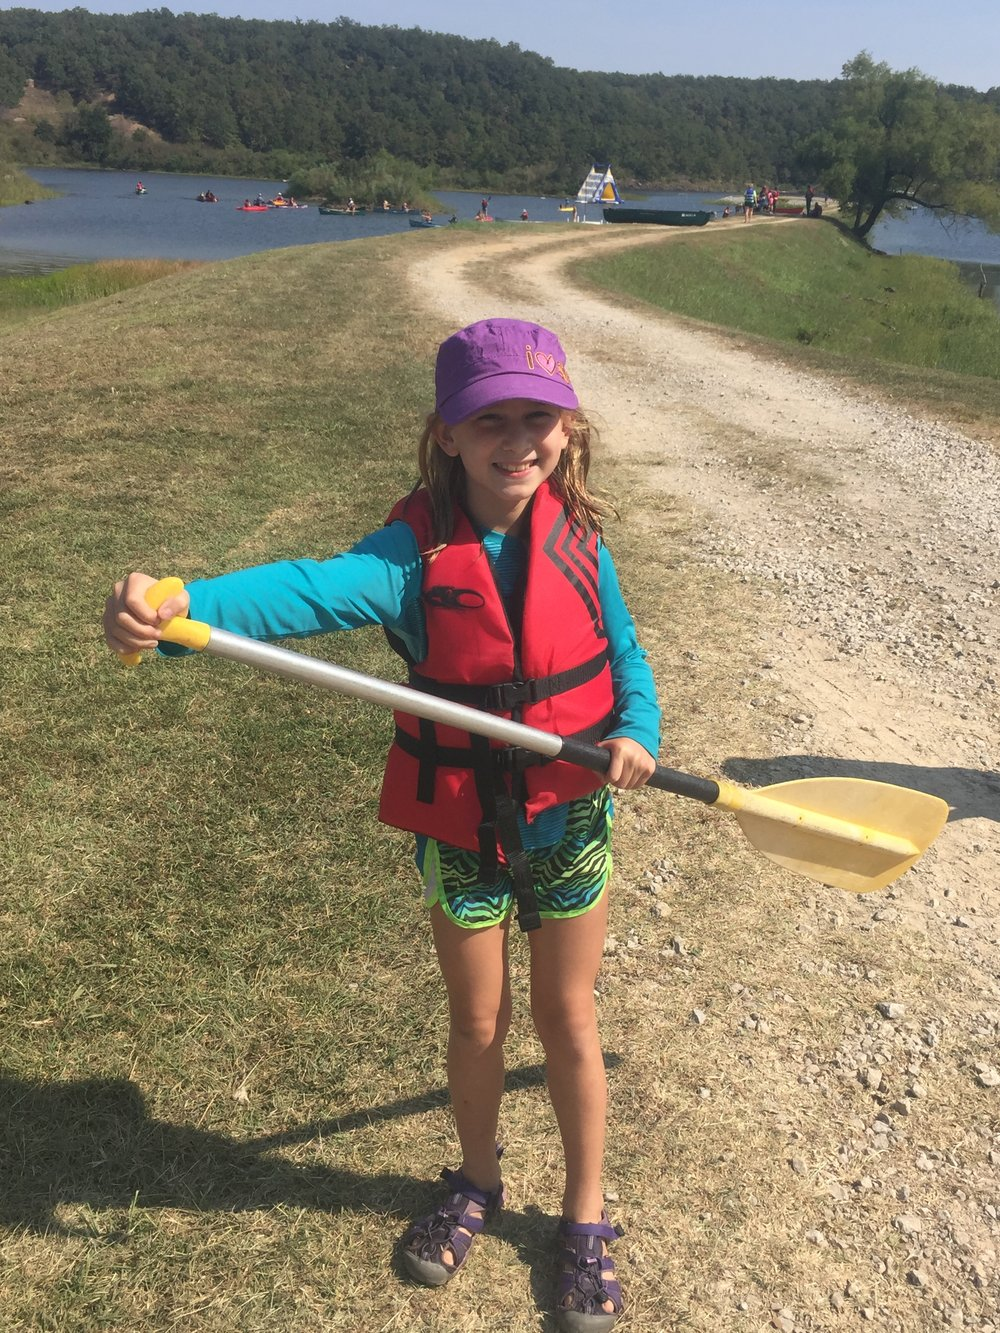 We get to do lots of fun outdoor stuff with Girl Scouts! Canoe Rendezvous